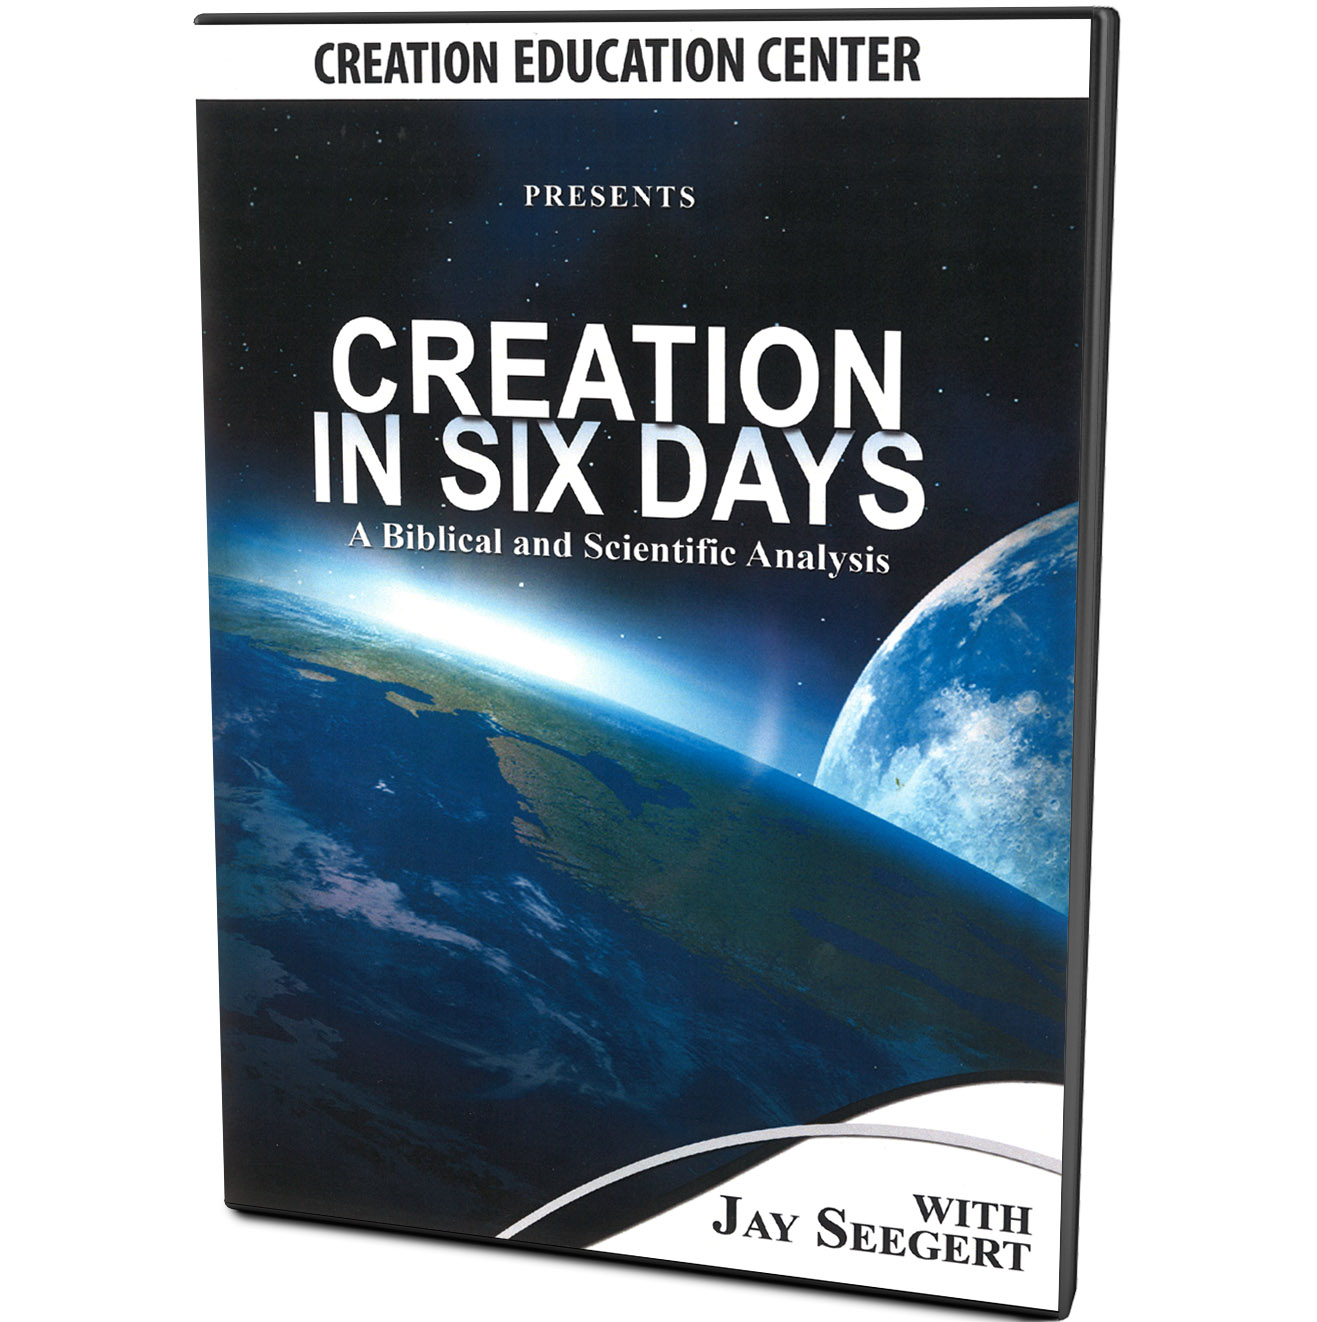 Creation in Six Days